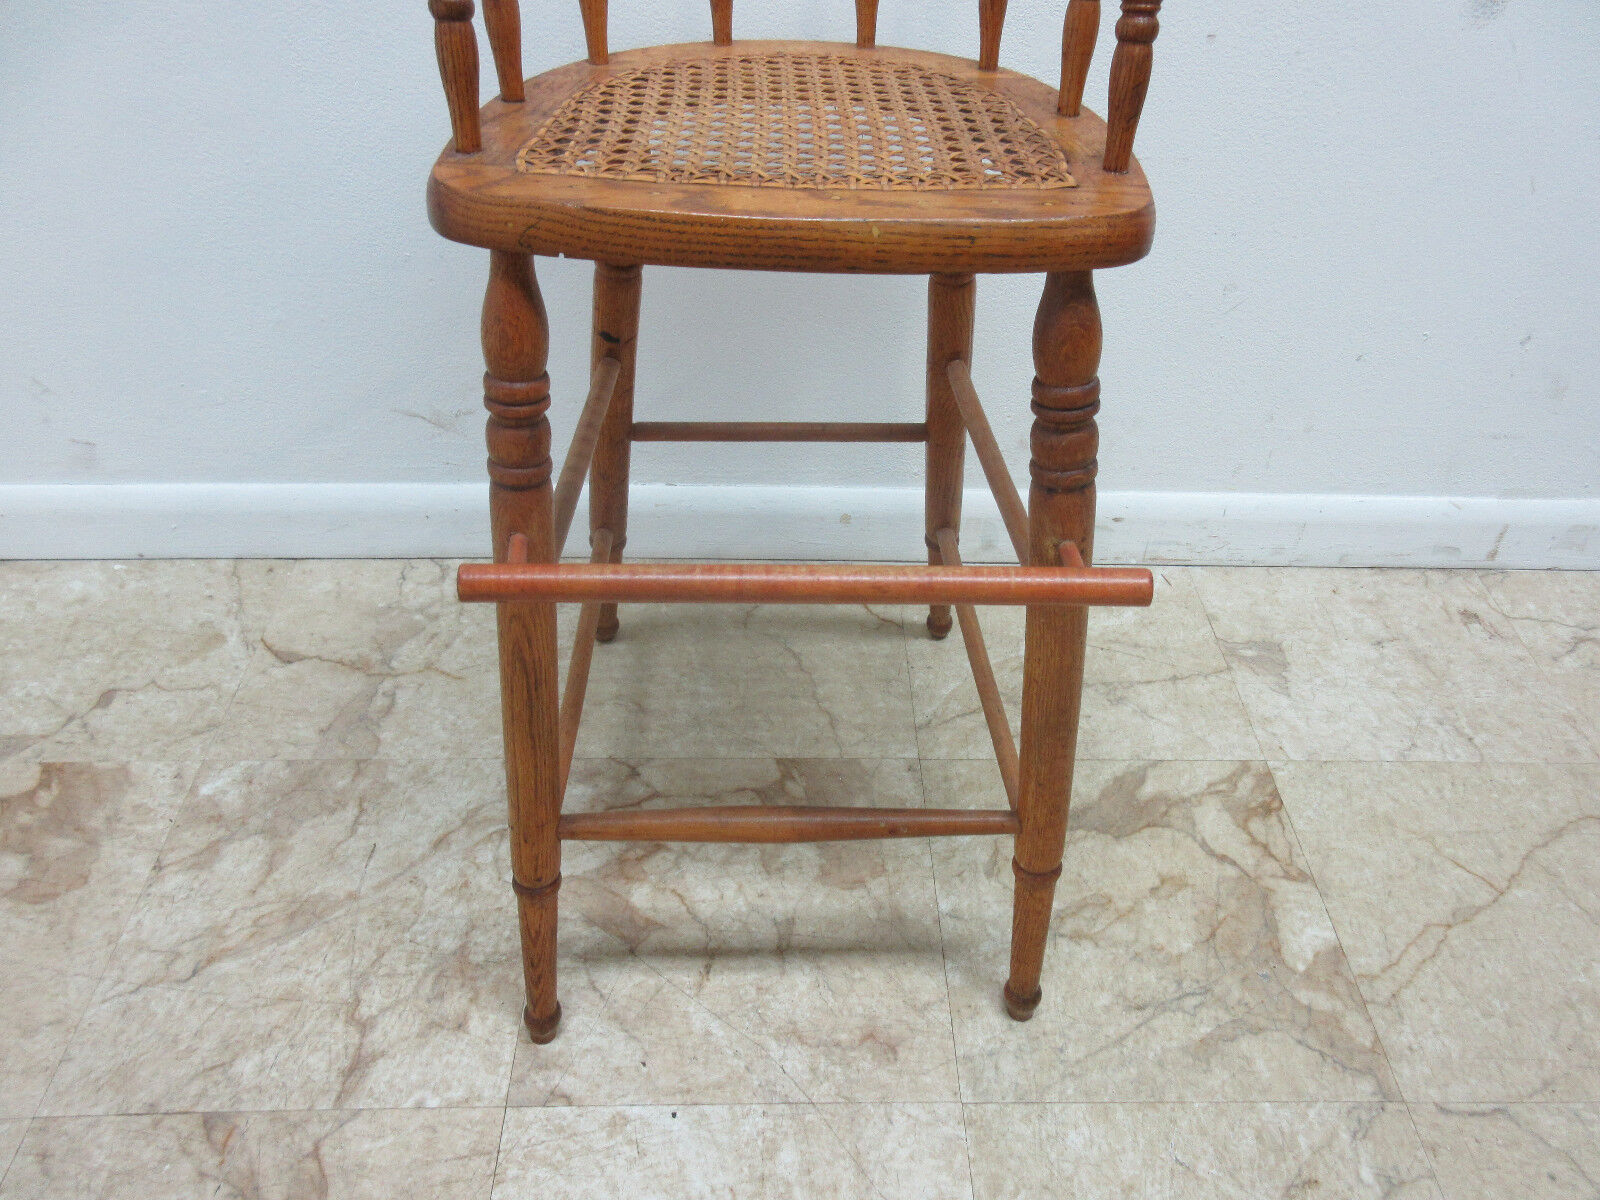 Antique high chair bentwood - Antique Tiger Oak Bent Wood High Chair Stool Chair Childs Doll 4 4 Of 10